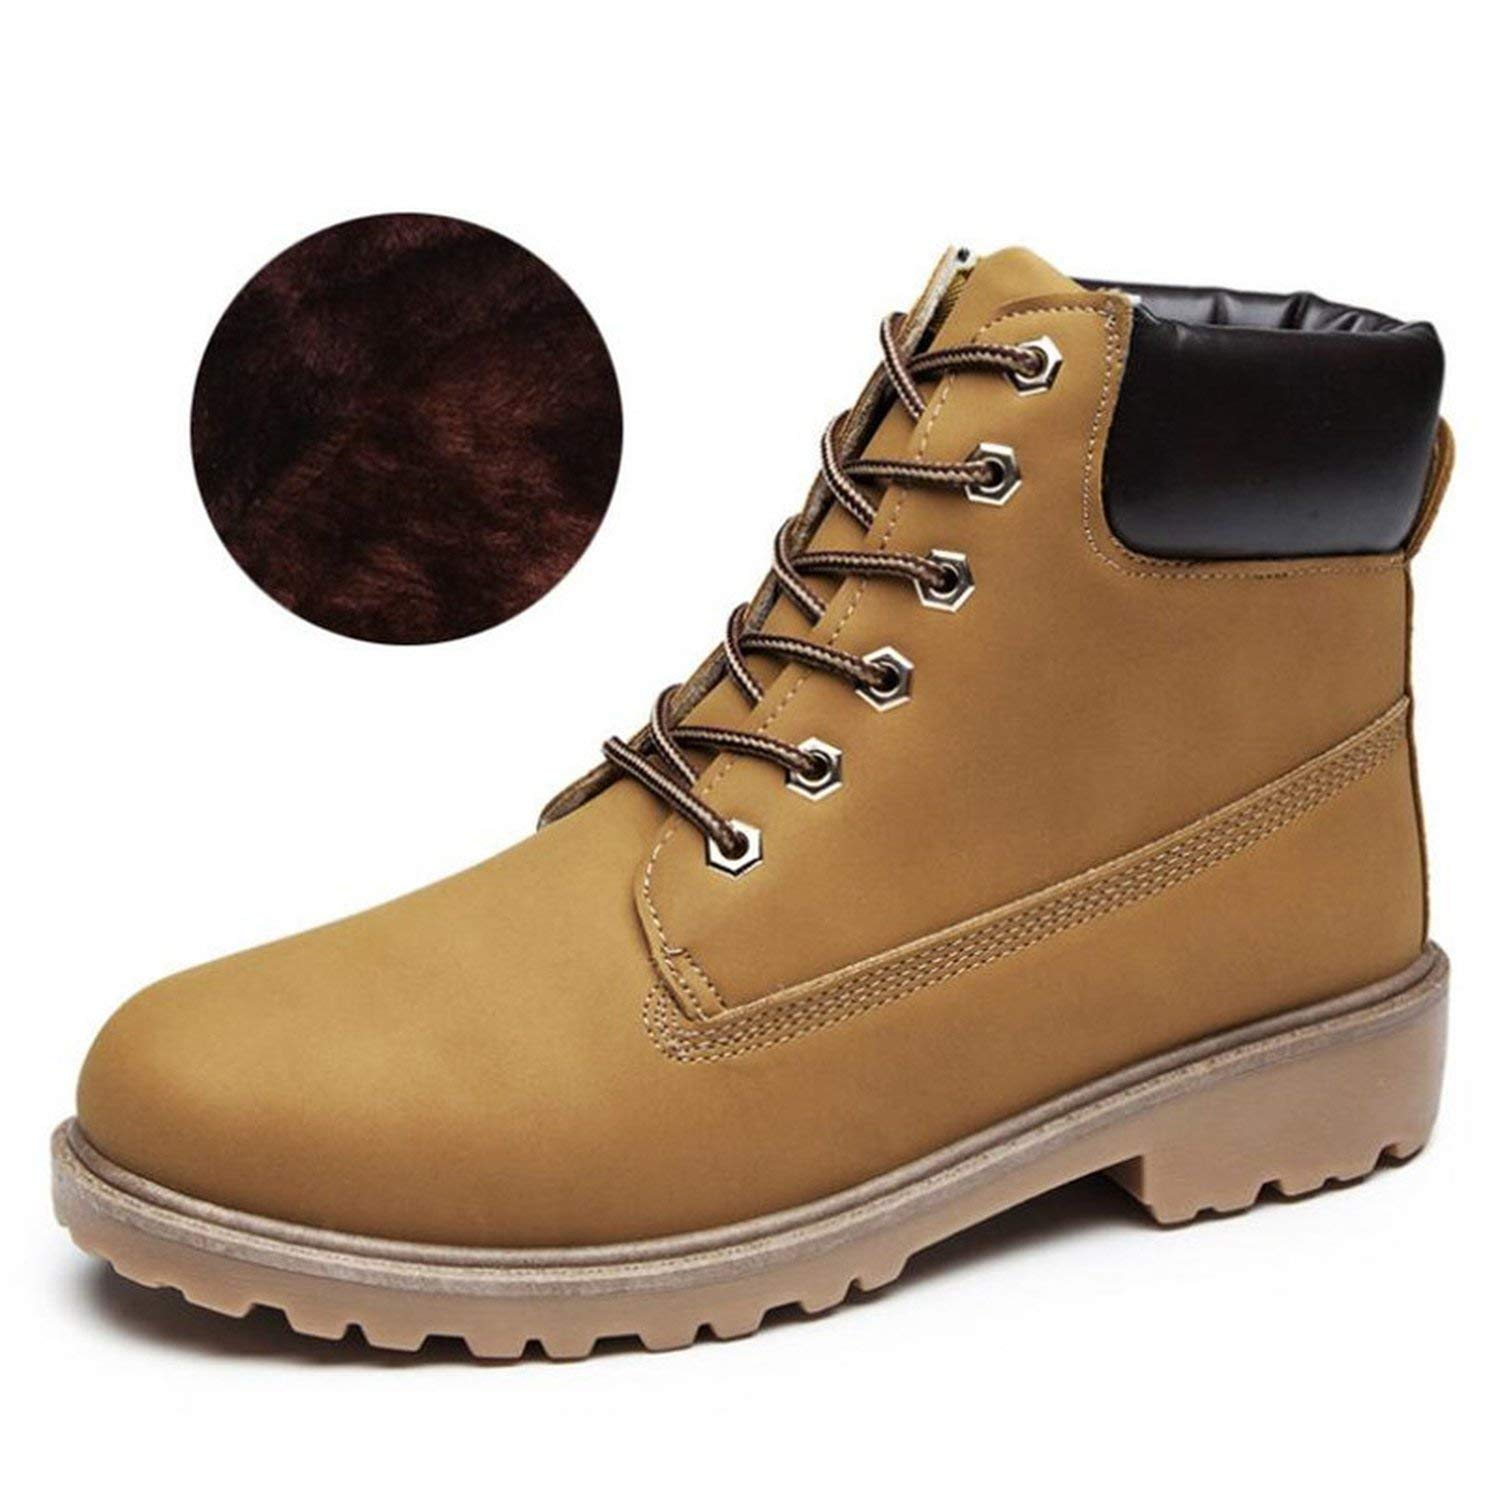 Fashion Booties Women Boots Female Snow Boots Womens Ankle Boots Square Heel Martin Boots Autumn Winter Shoes Q383,A7,5.5